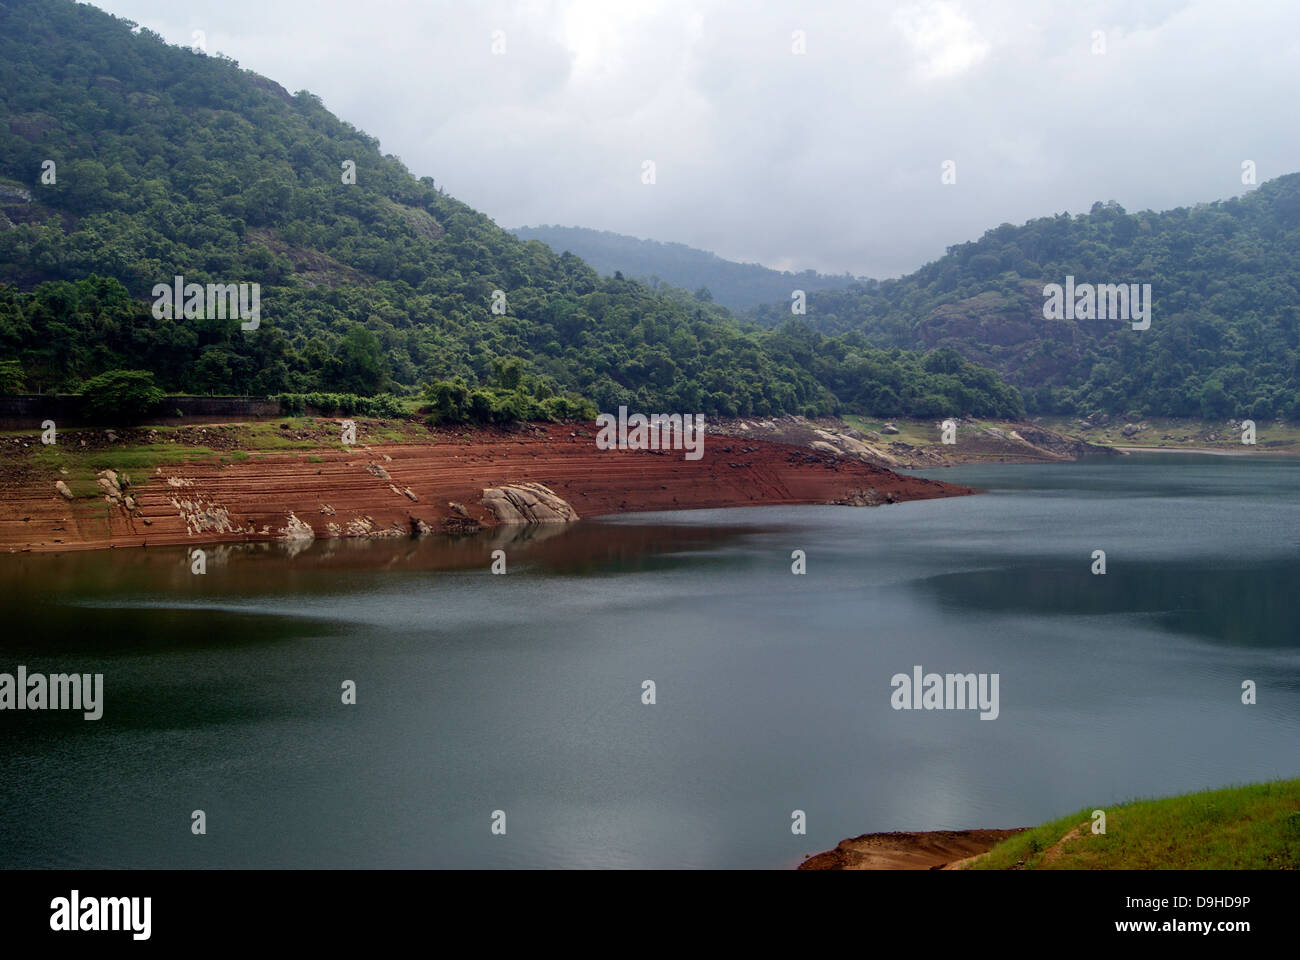 Thenmala Dam Reservoir and nearby Forest area Landscape in Kerala India - Stock Image